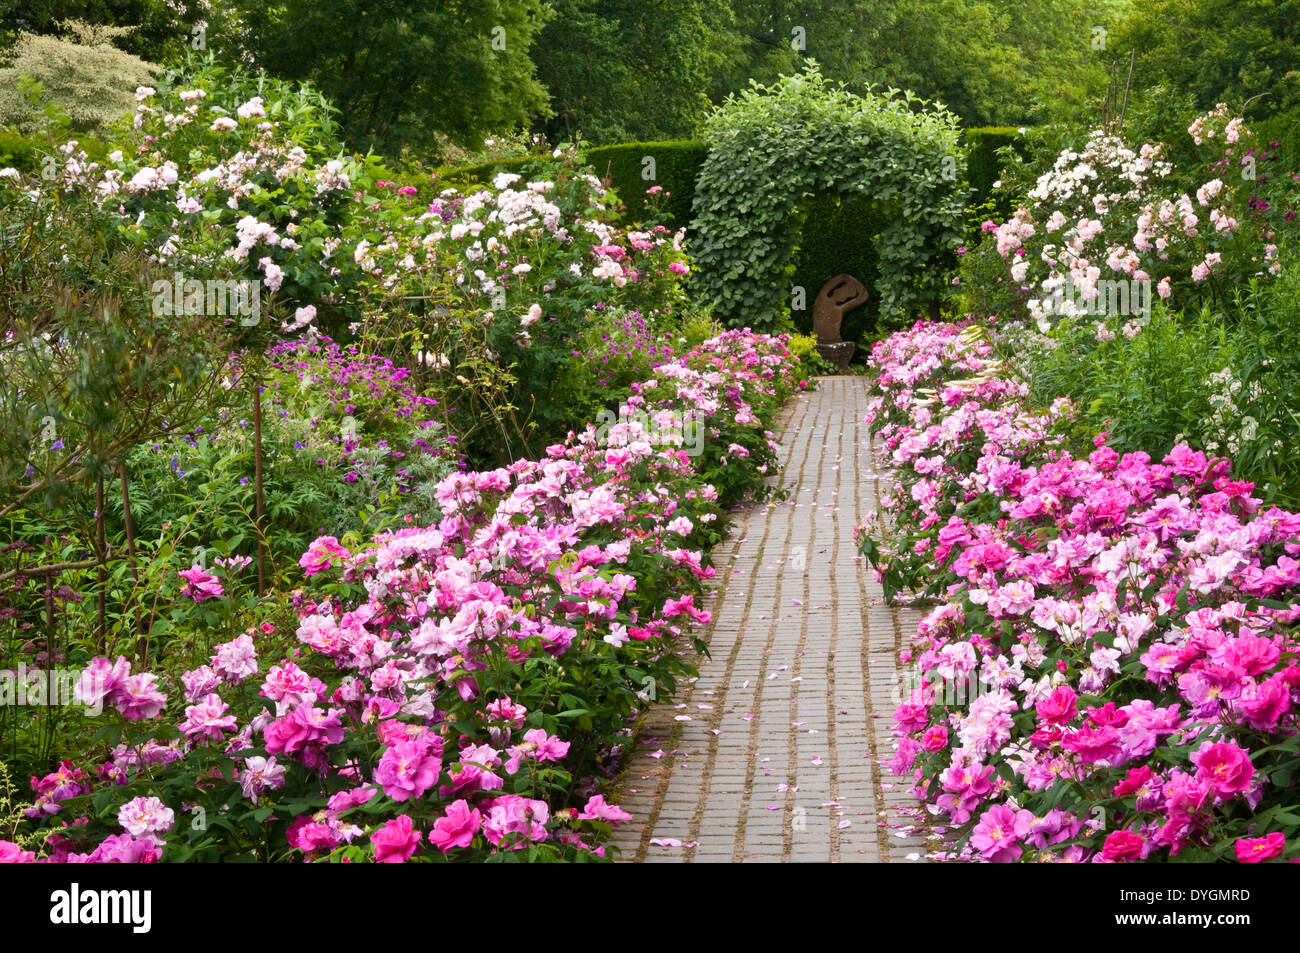 Colourful Roses Line A Brick Paved Path In The Rose Border